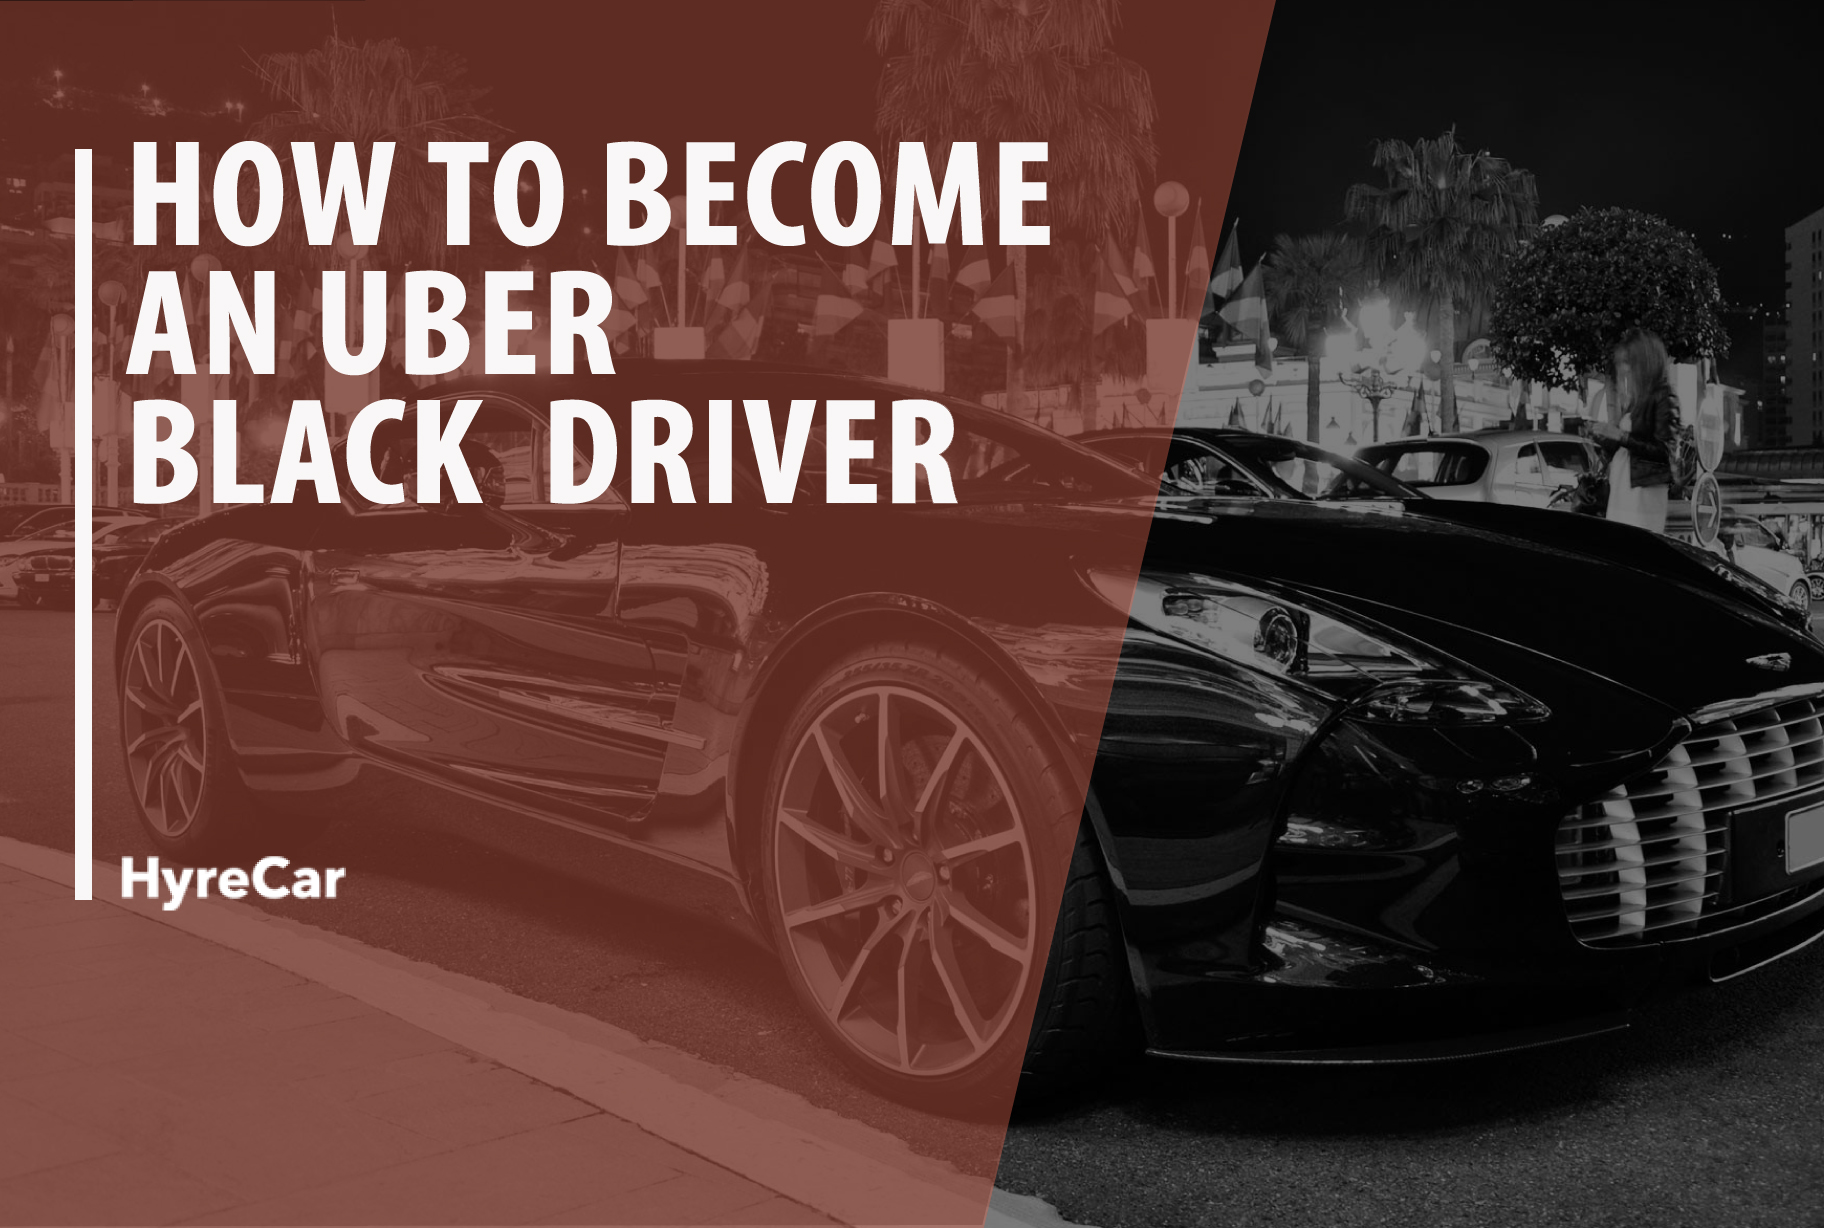 Uber Black Car List >> How To Become an Uber Black Driver - Driver Requirements